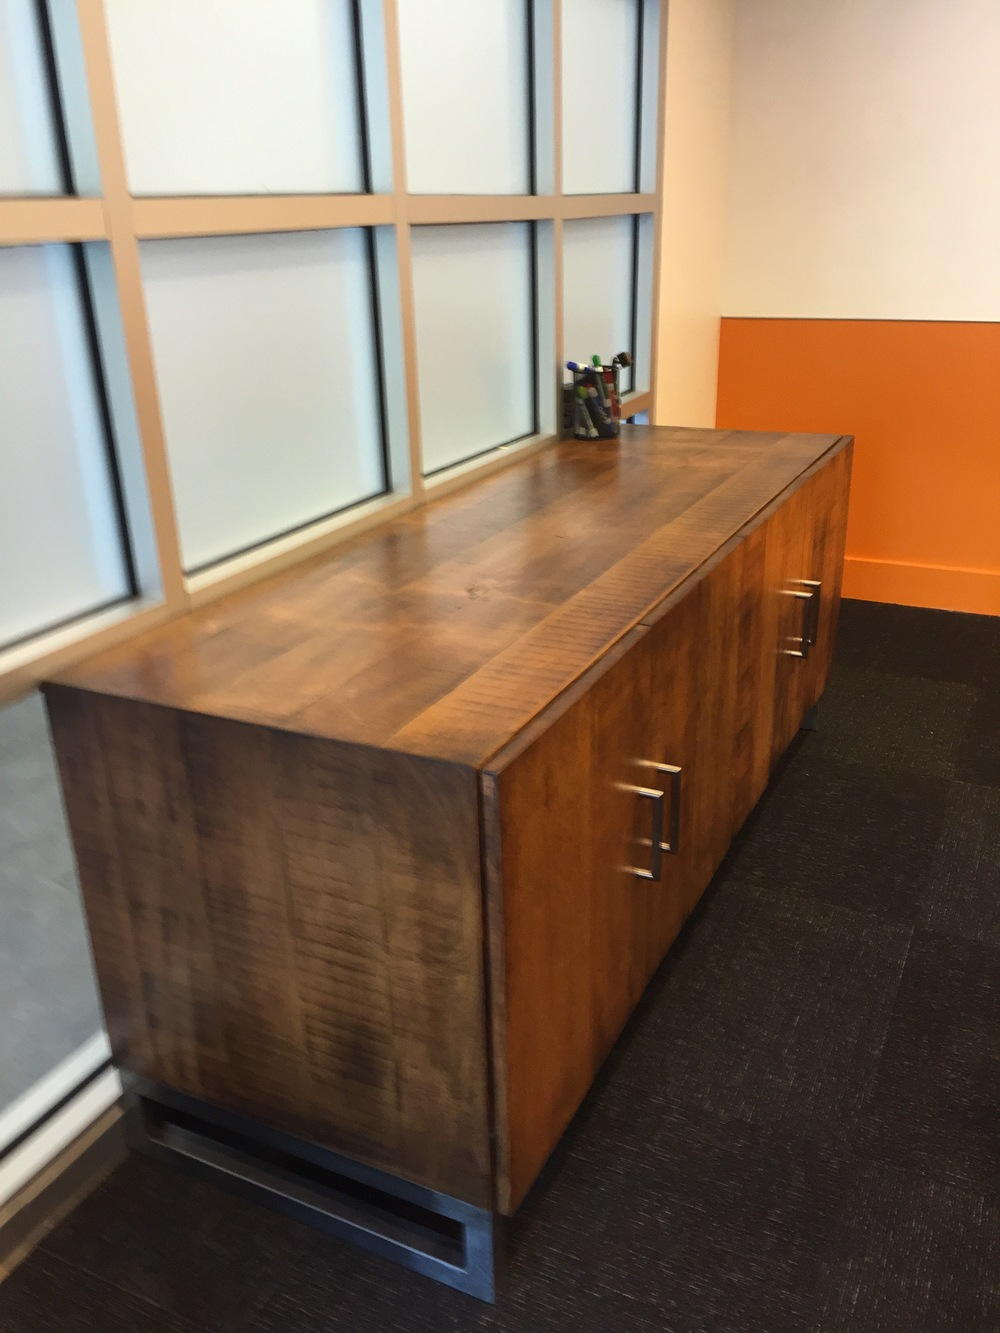 Storage Credenza for Conference Room